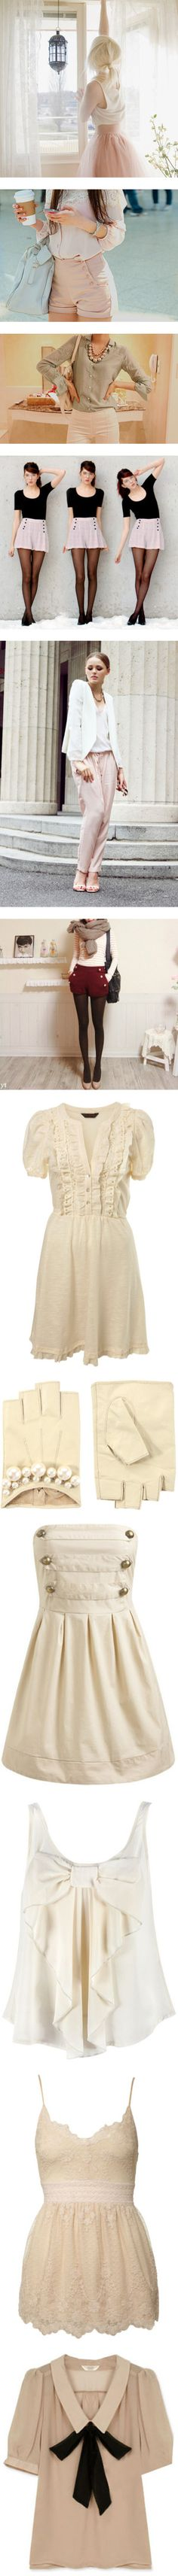 """""""Darling,Let's wear a pastel and romantic outfit.?"""" by daisynavarro ❤ liked on Polyvore"""